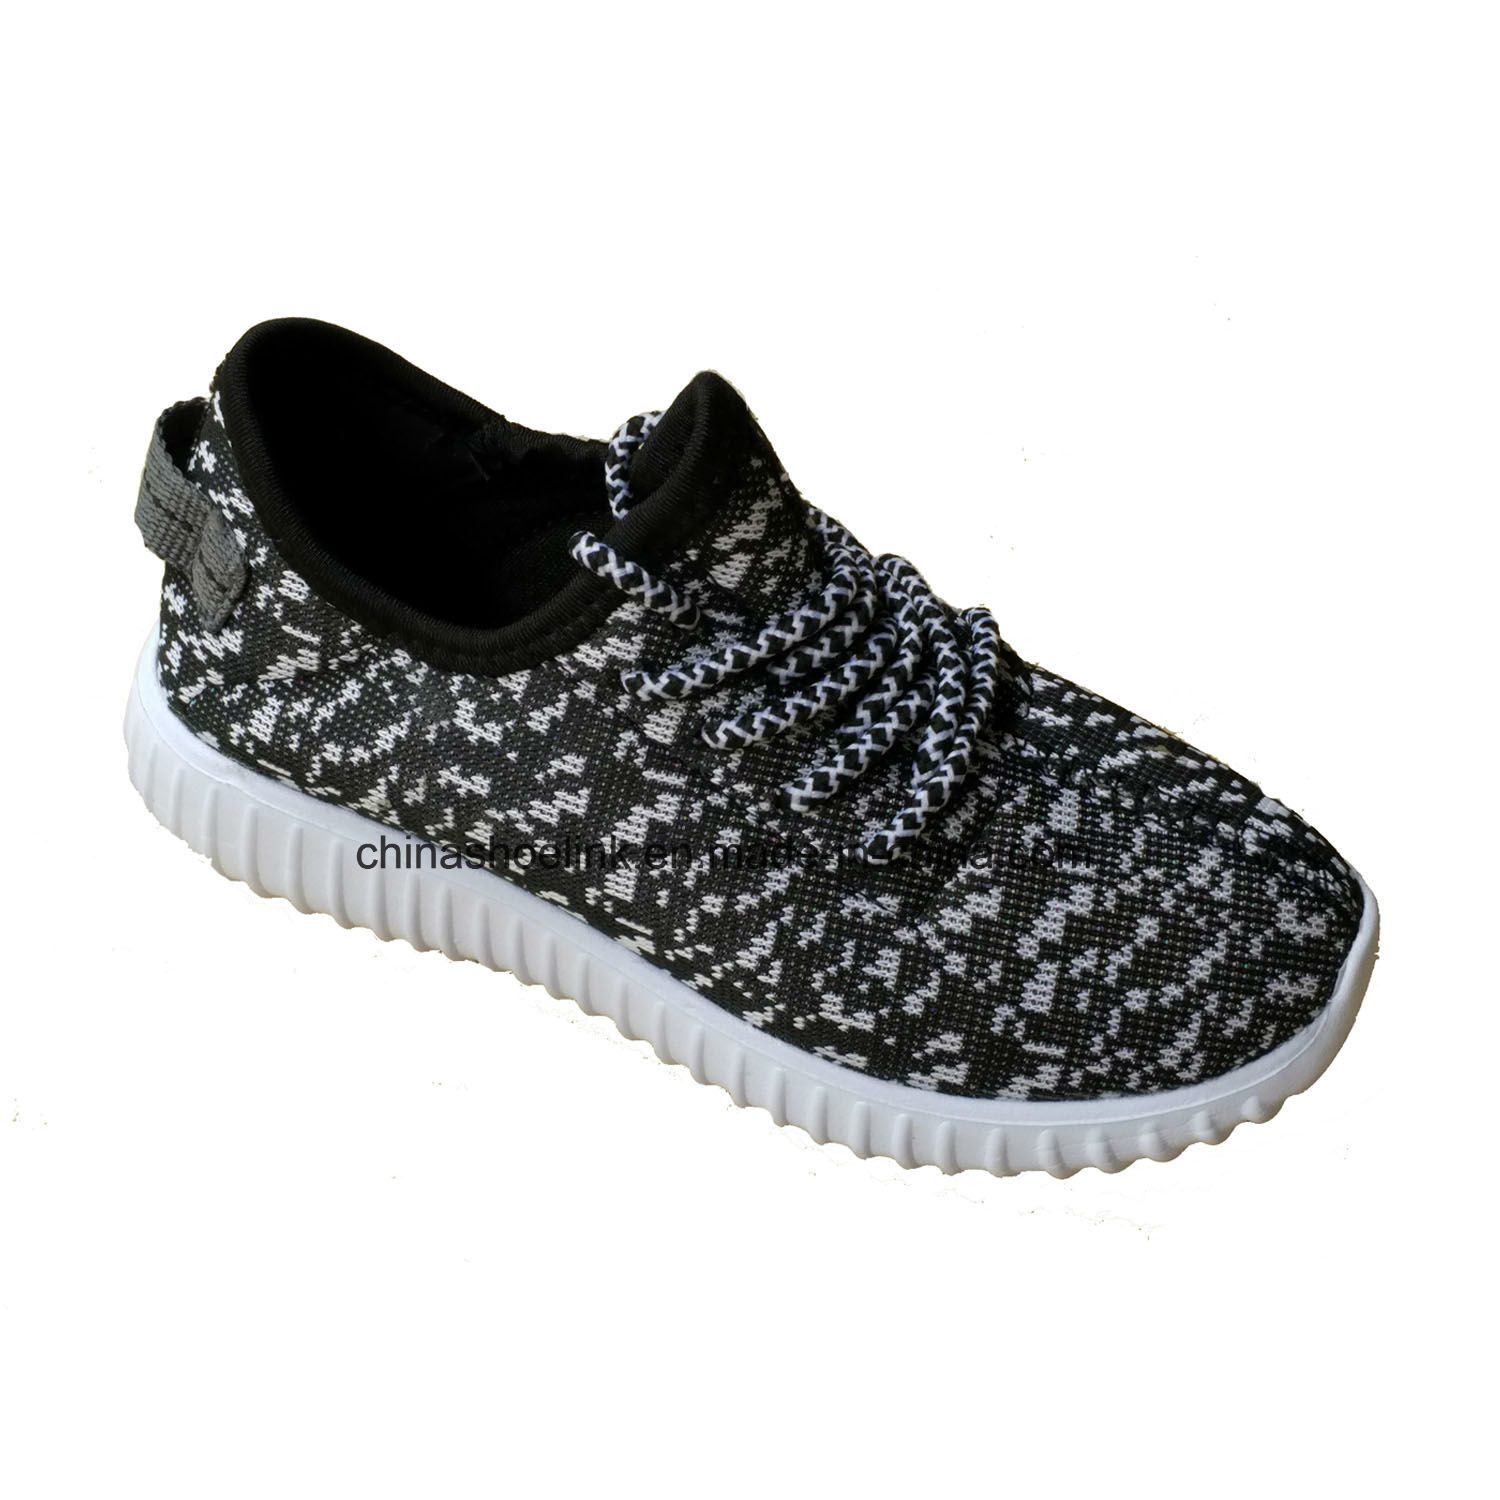 Fashion Spring&Summer Knitting Leisure Comfort Casual Shoes Manufaturer for Children